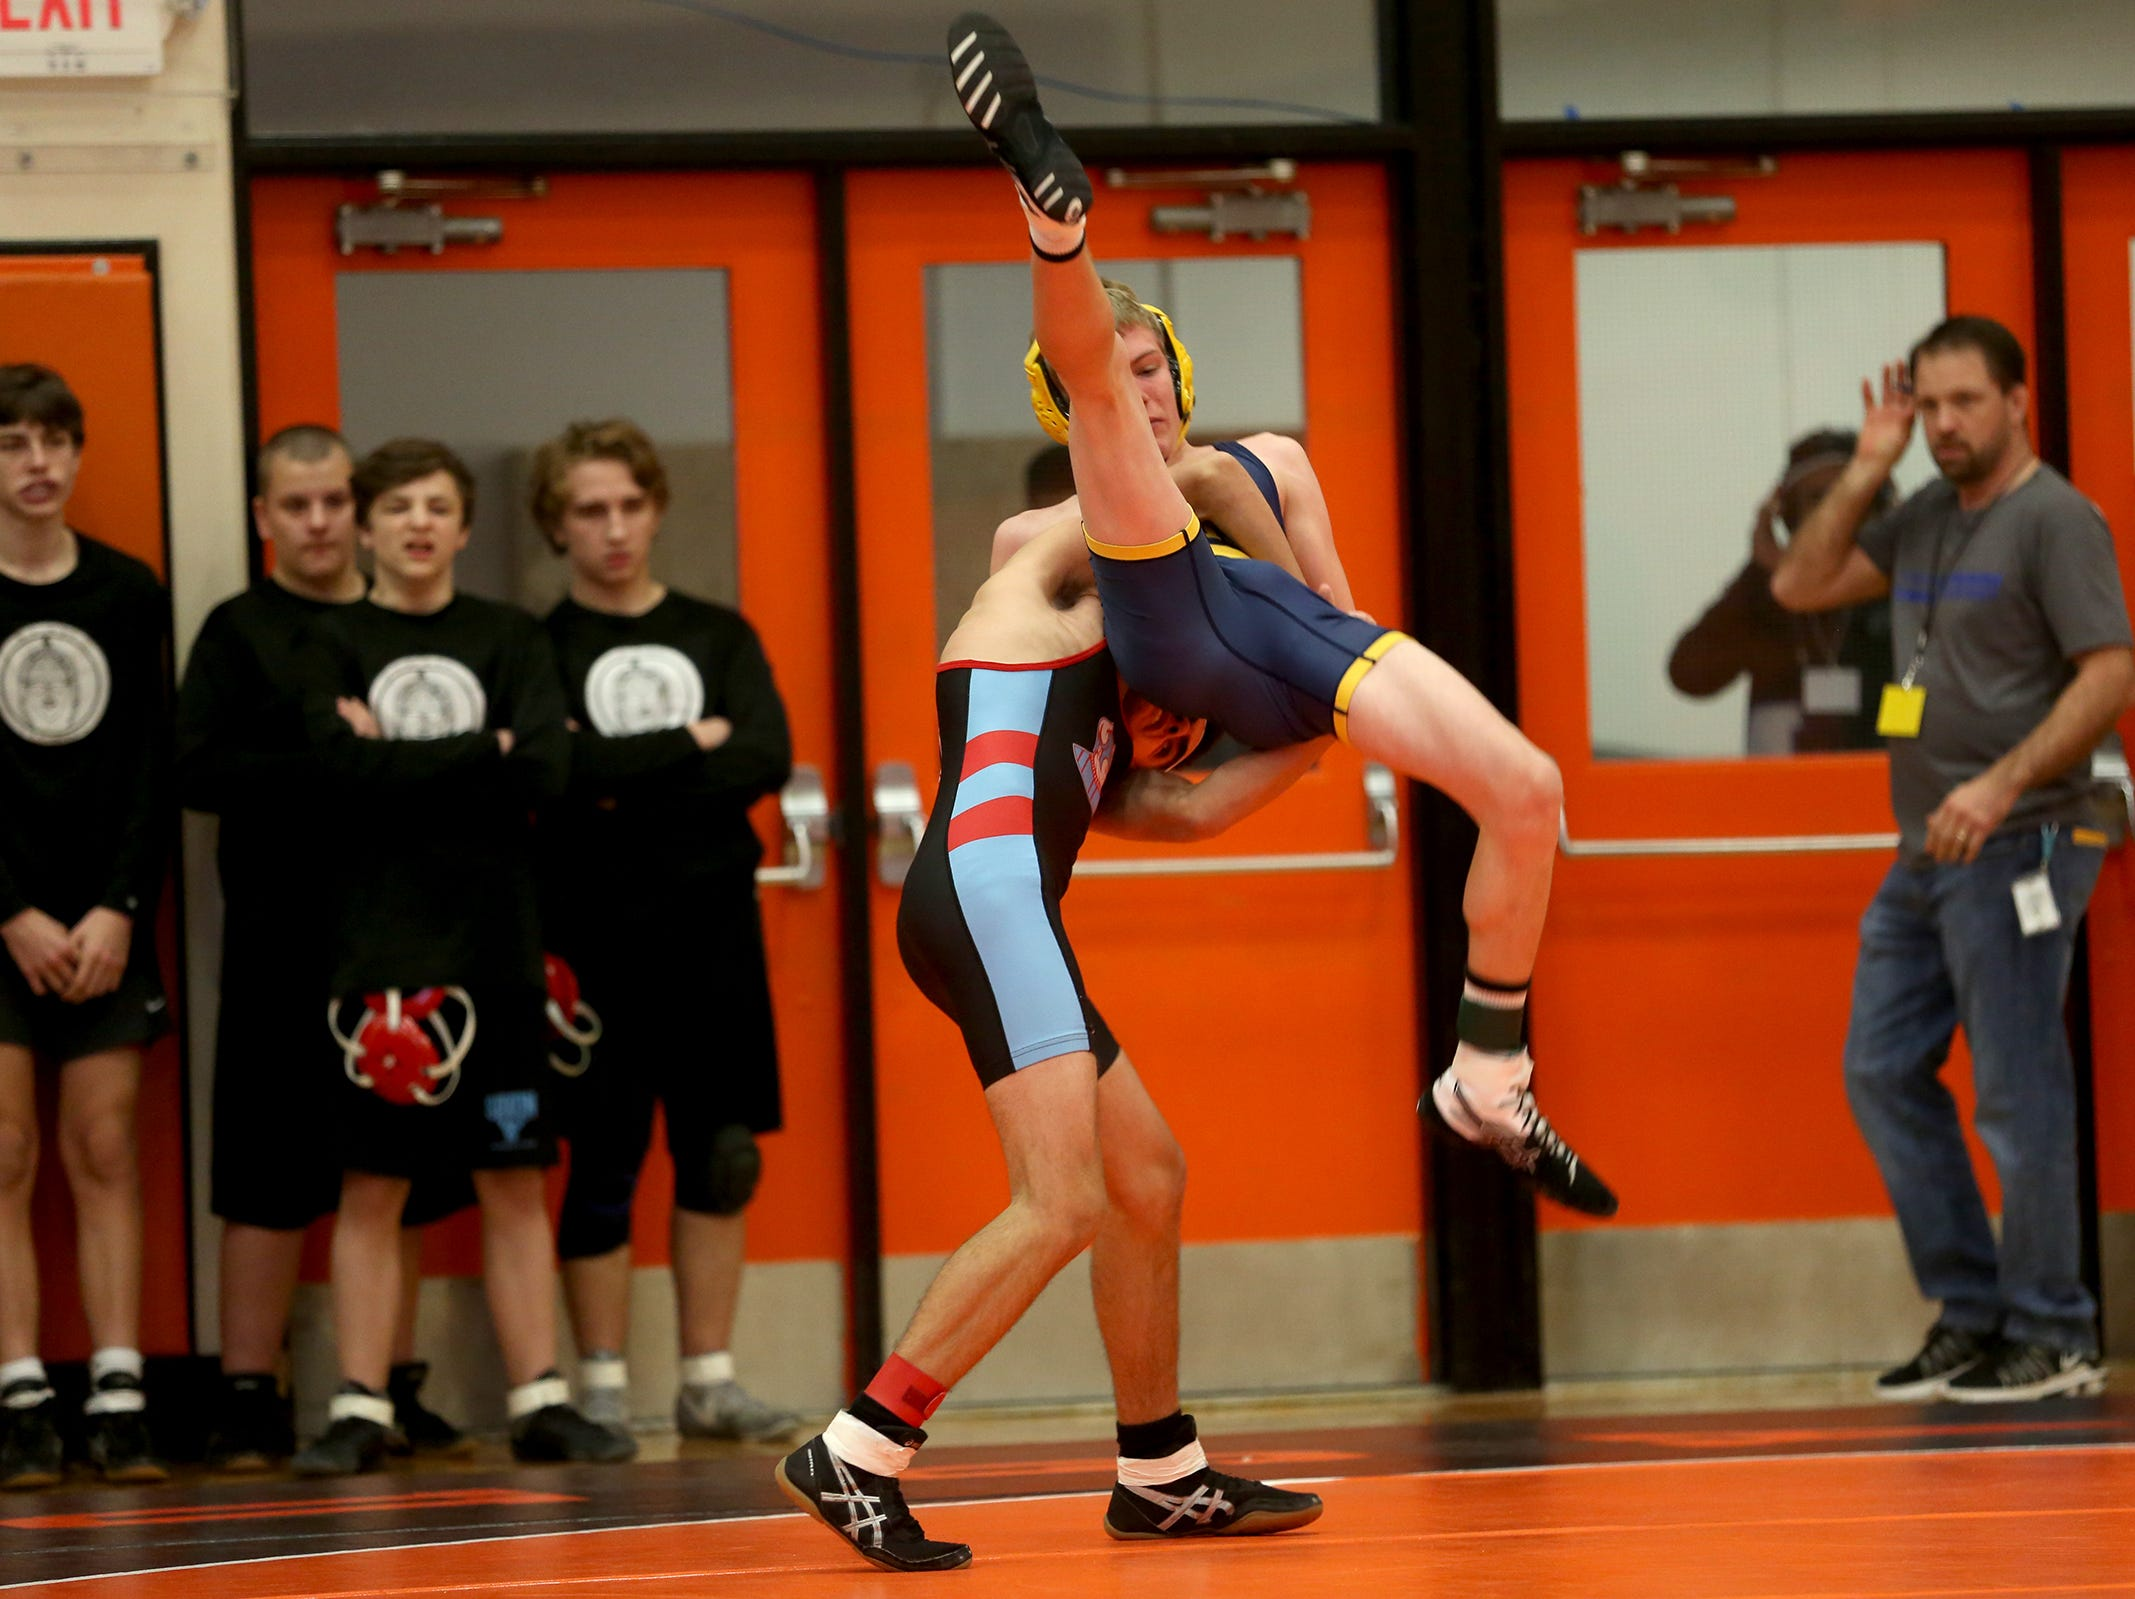 South Salem's Hunter Downs-Getchell picks up Bend's Isaiah Todd as they compete in the 113 weight class during the Mountain Valley Conference district wrestling tournament at Sprague High School in Salem on Friday, Feb. 15, 2019.